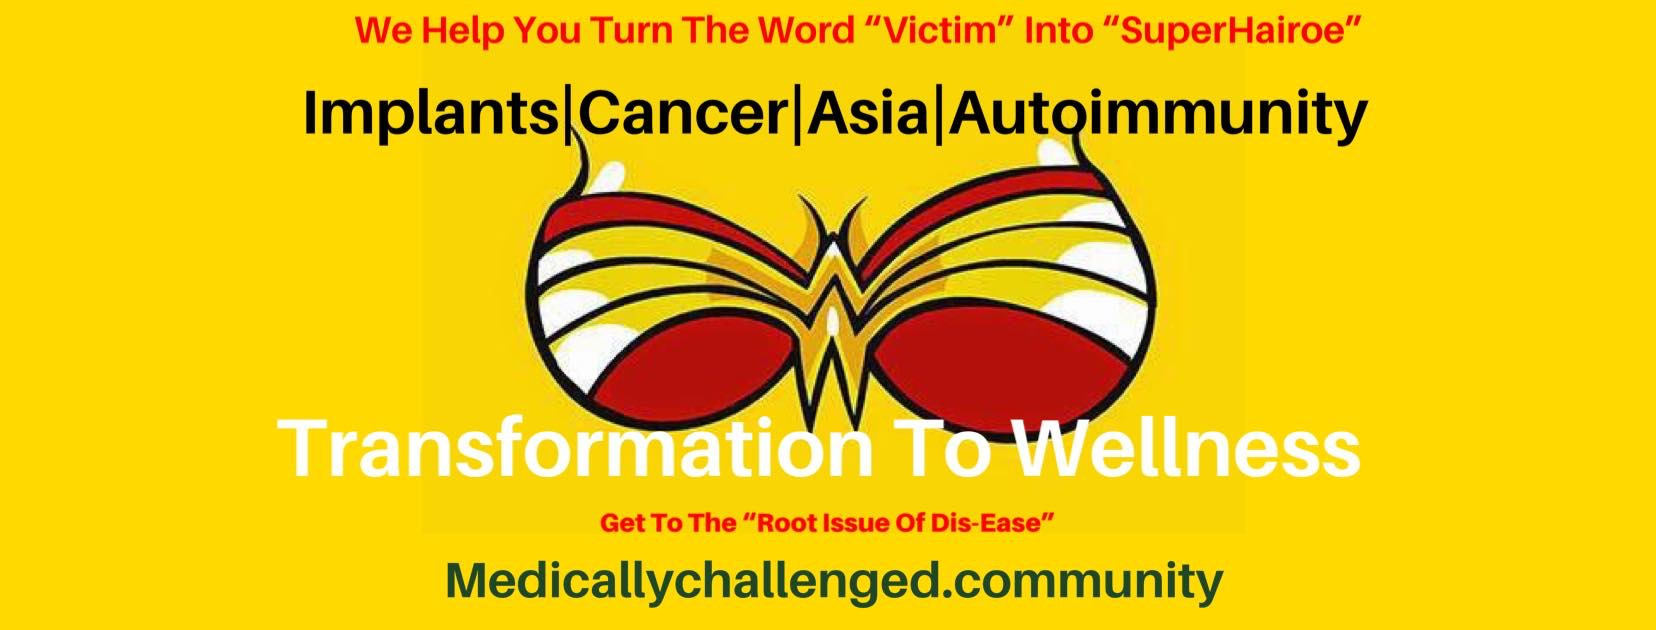 Recommend-resources-affiliates-breast-implant-illness